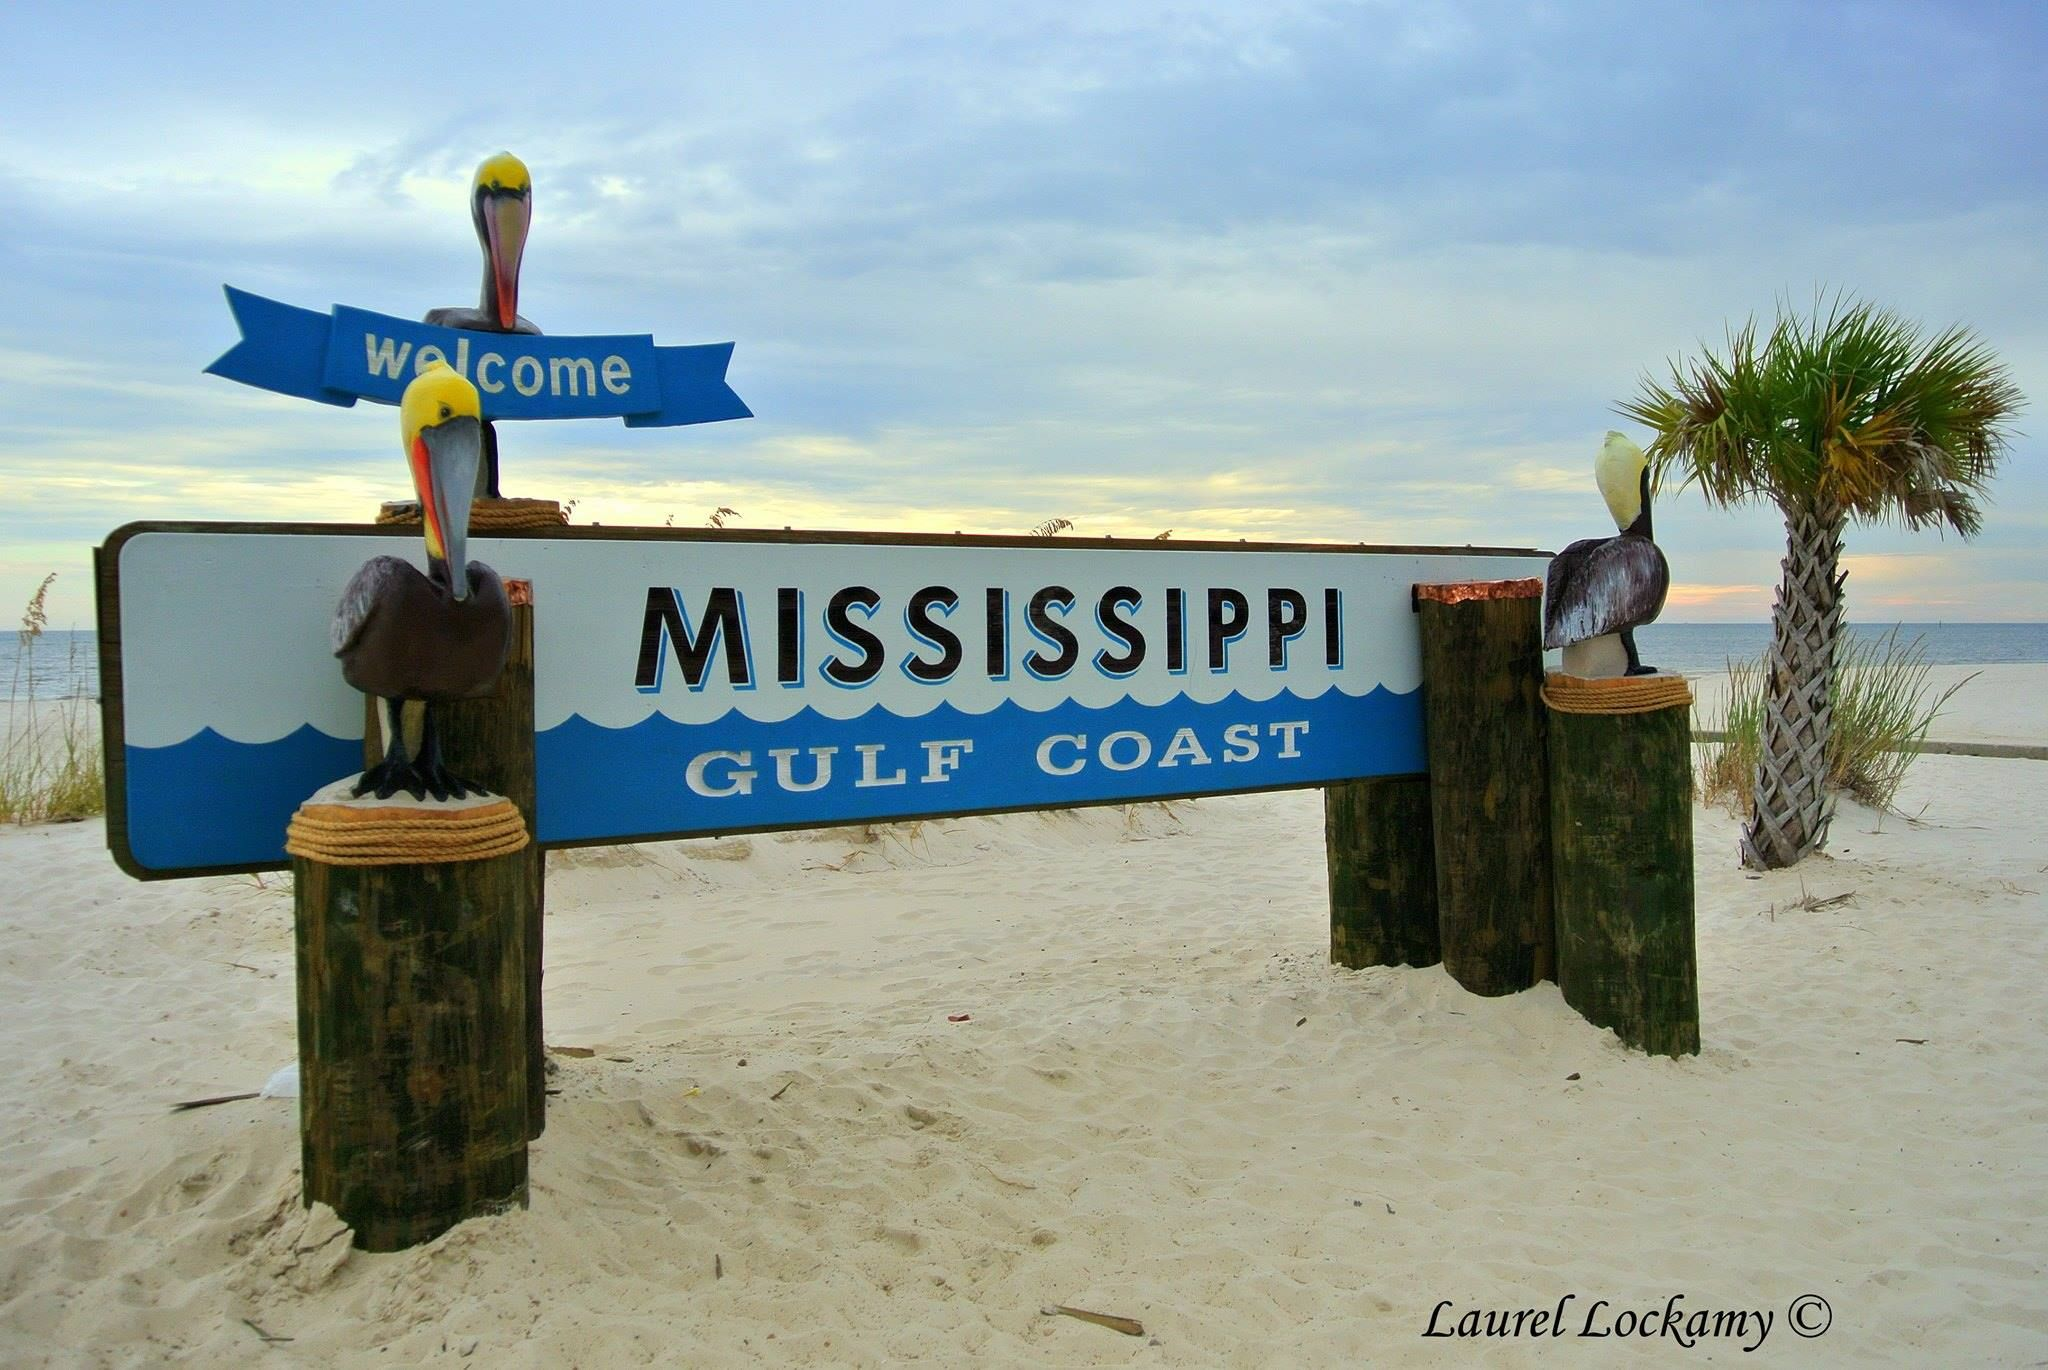 I grew up in Gulfport and still visit the Mississippi Gulf Coast as often as possible.